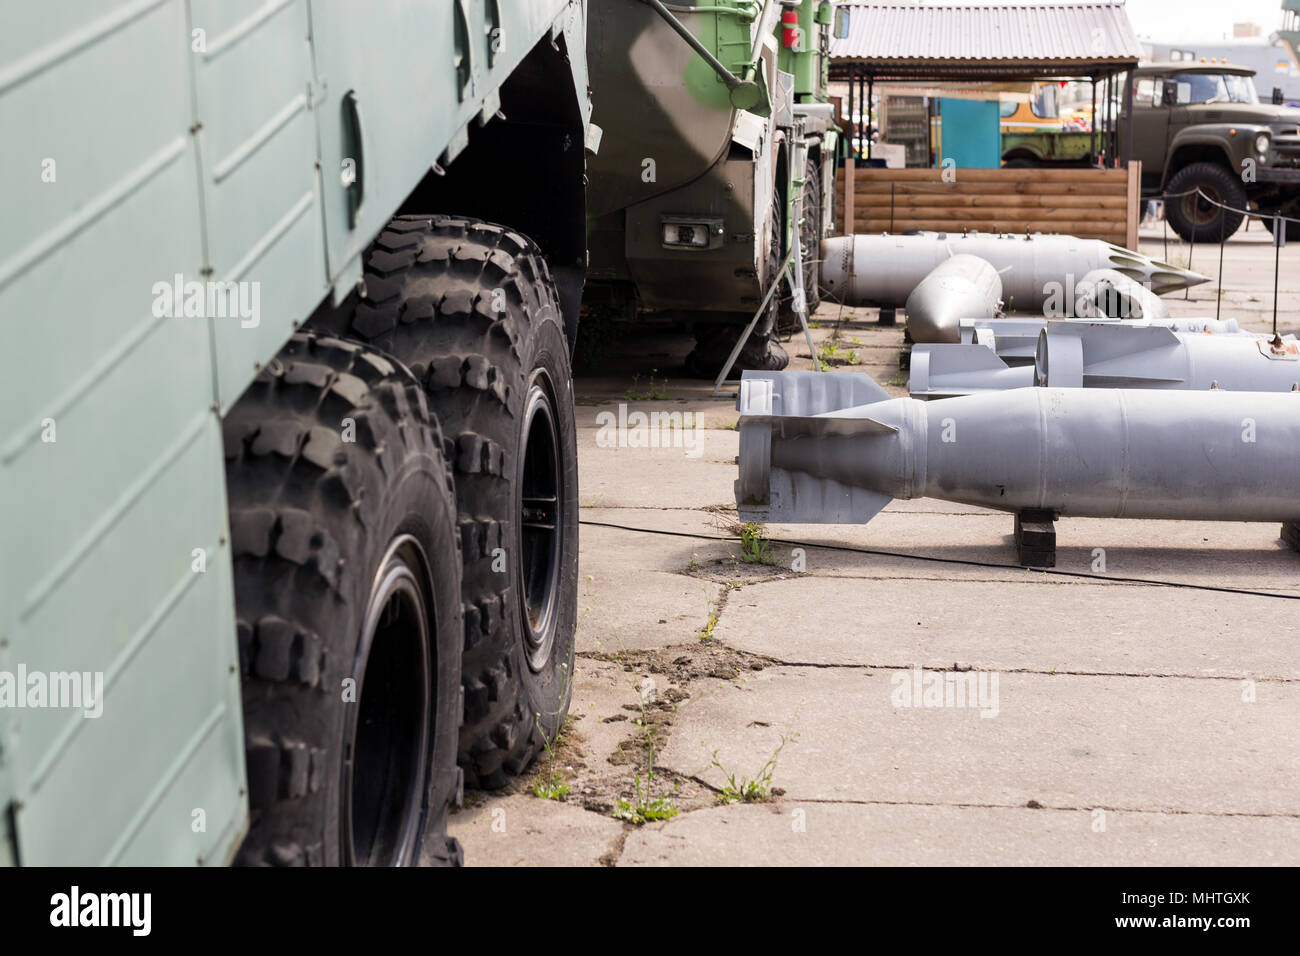 Military base with weapons and heavy machinery.  Army naval post with air boms outdoors. Cold war and militarization concept - Stock Image